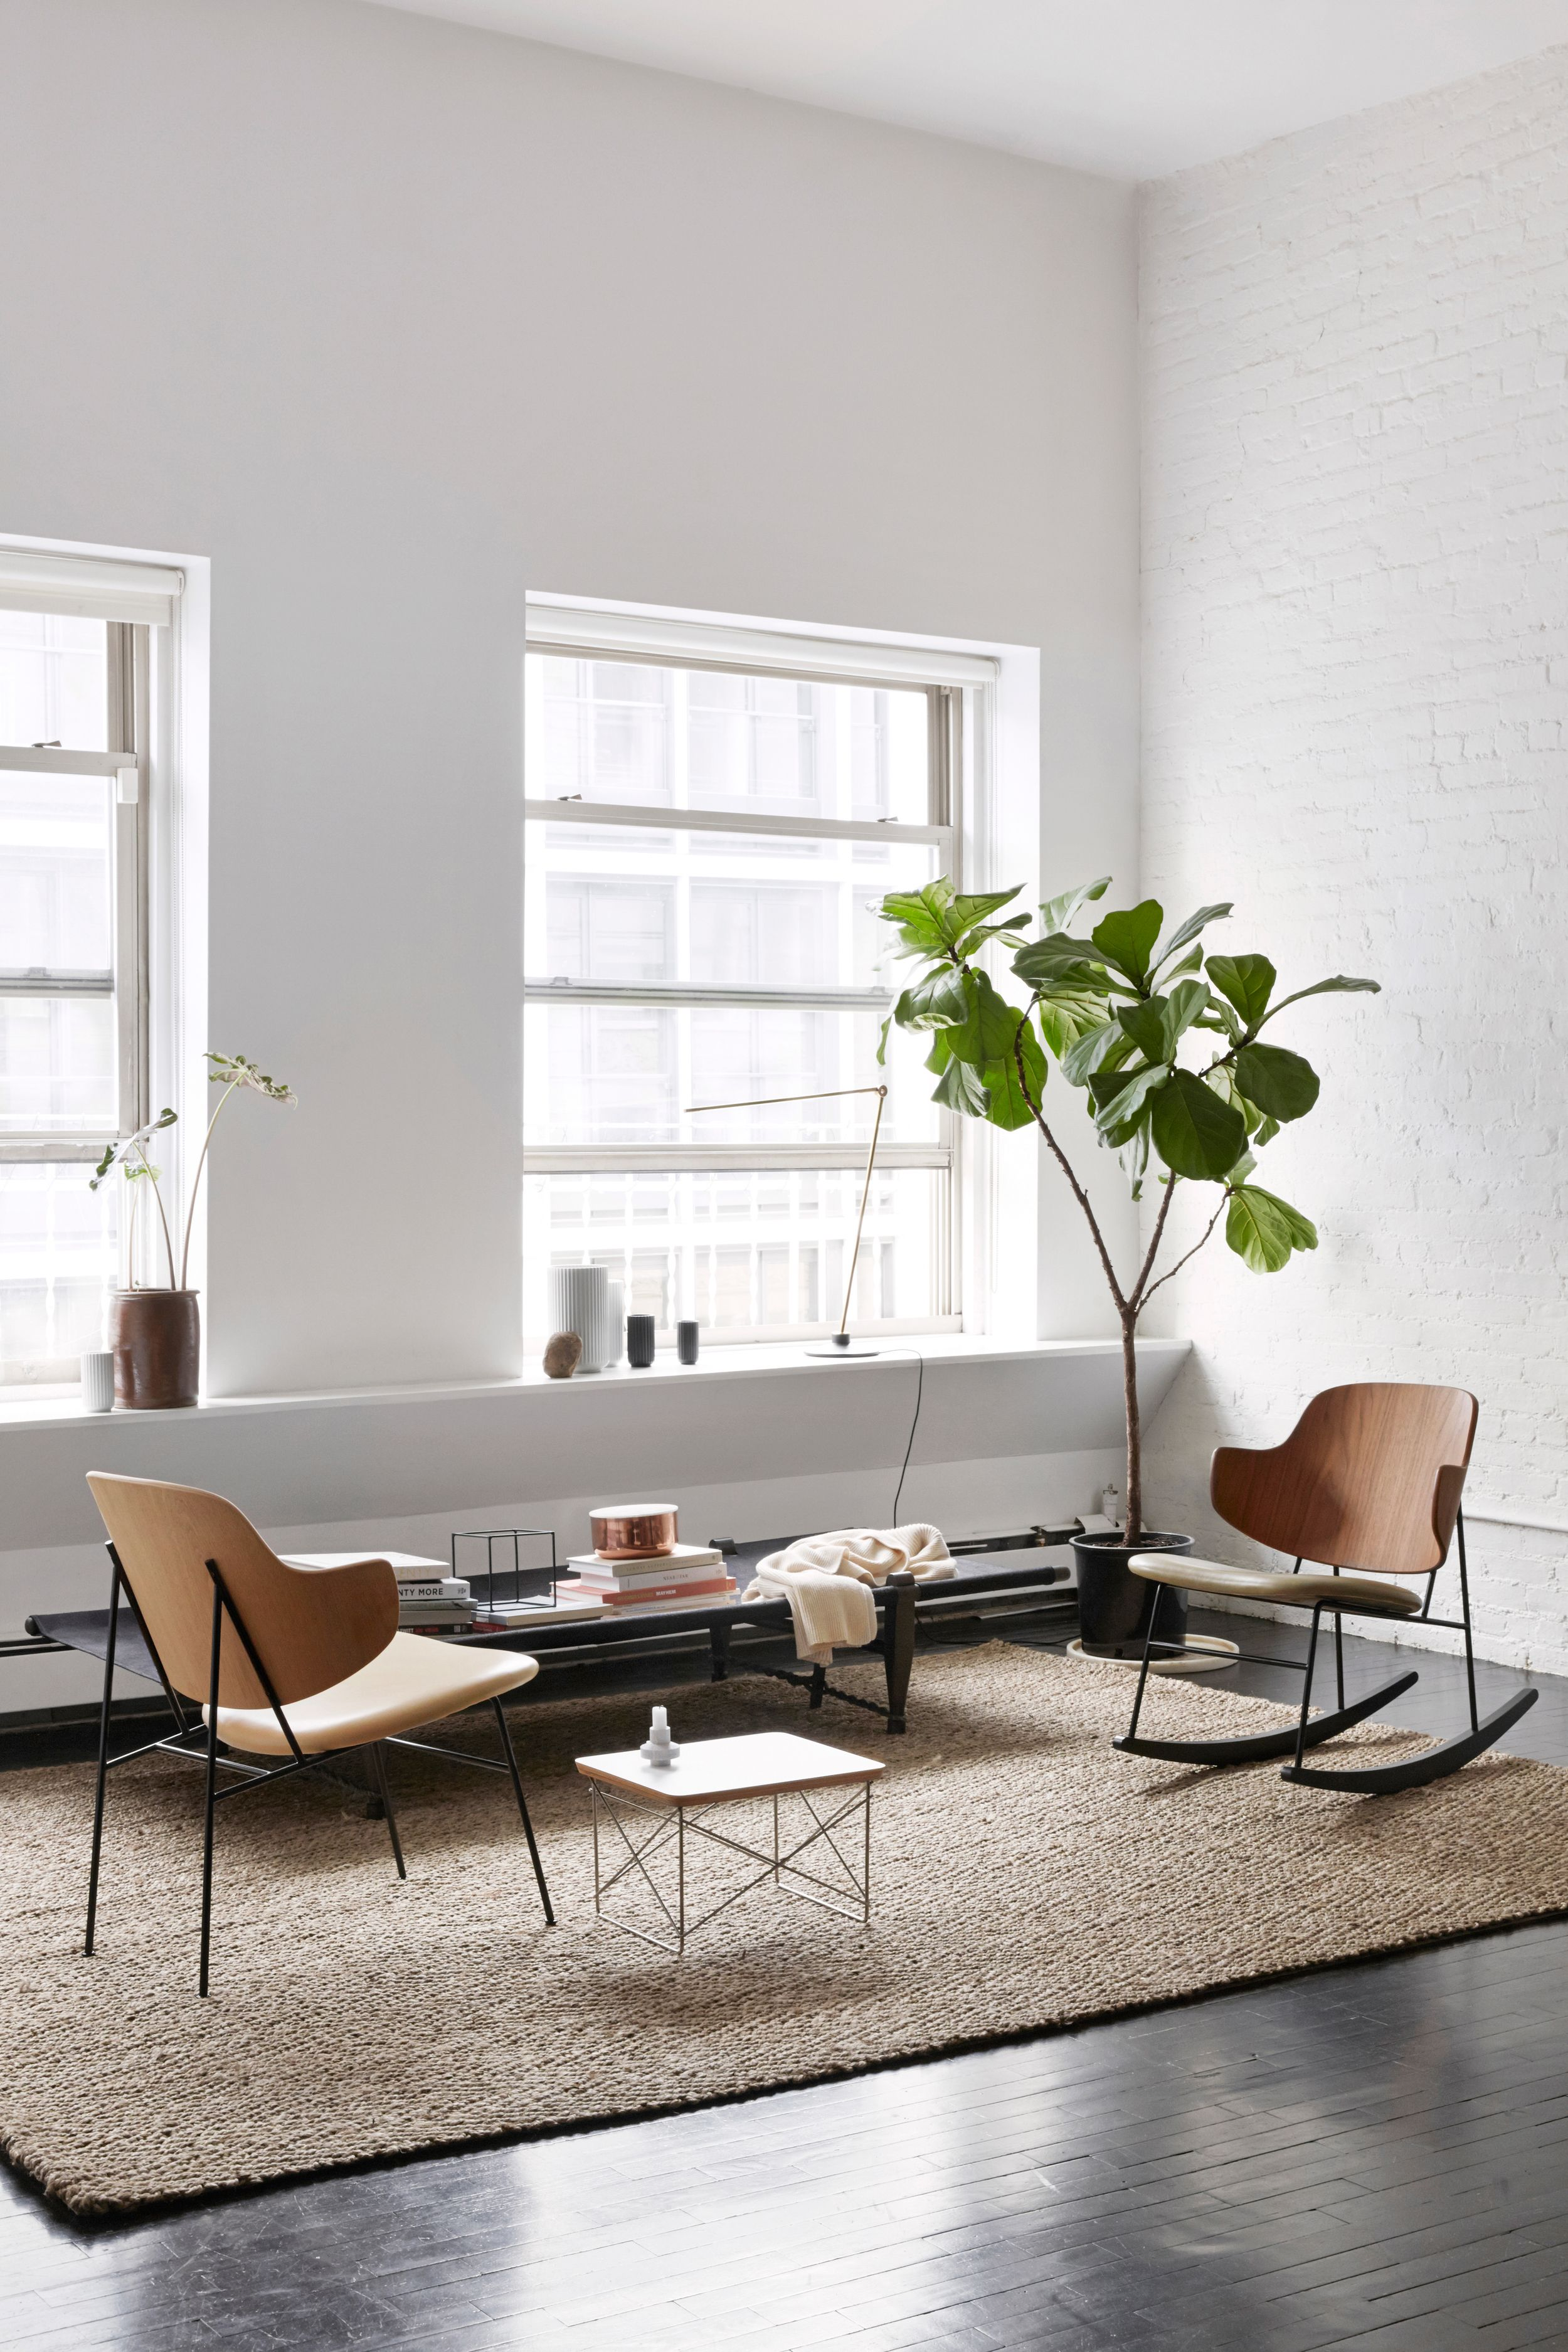 mis century modern chairs in neutral decor living room   casama ...